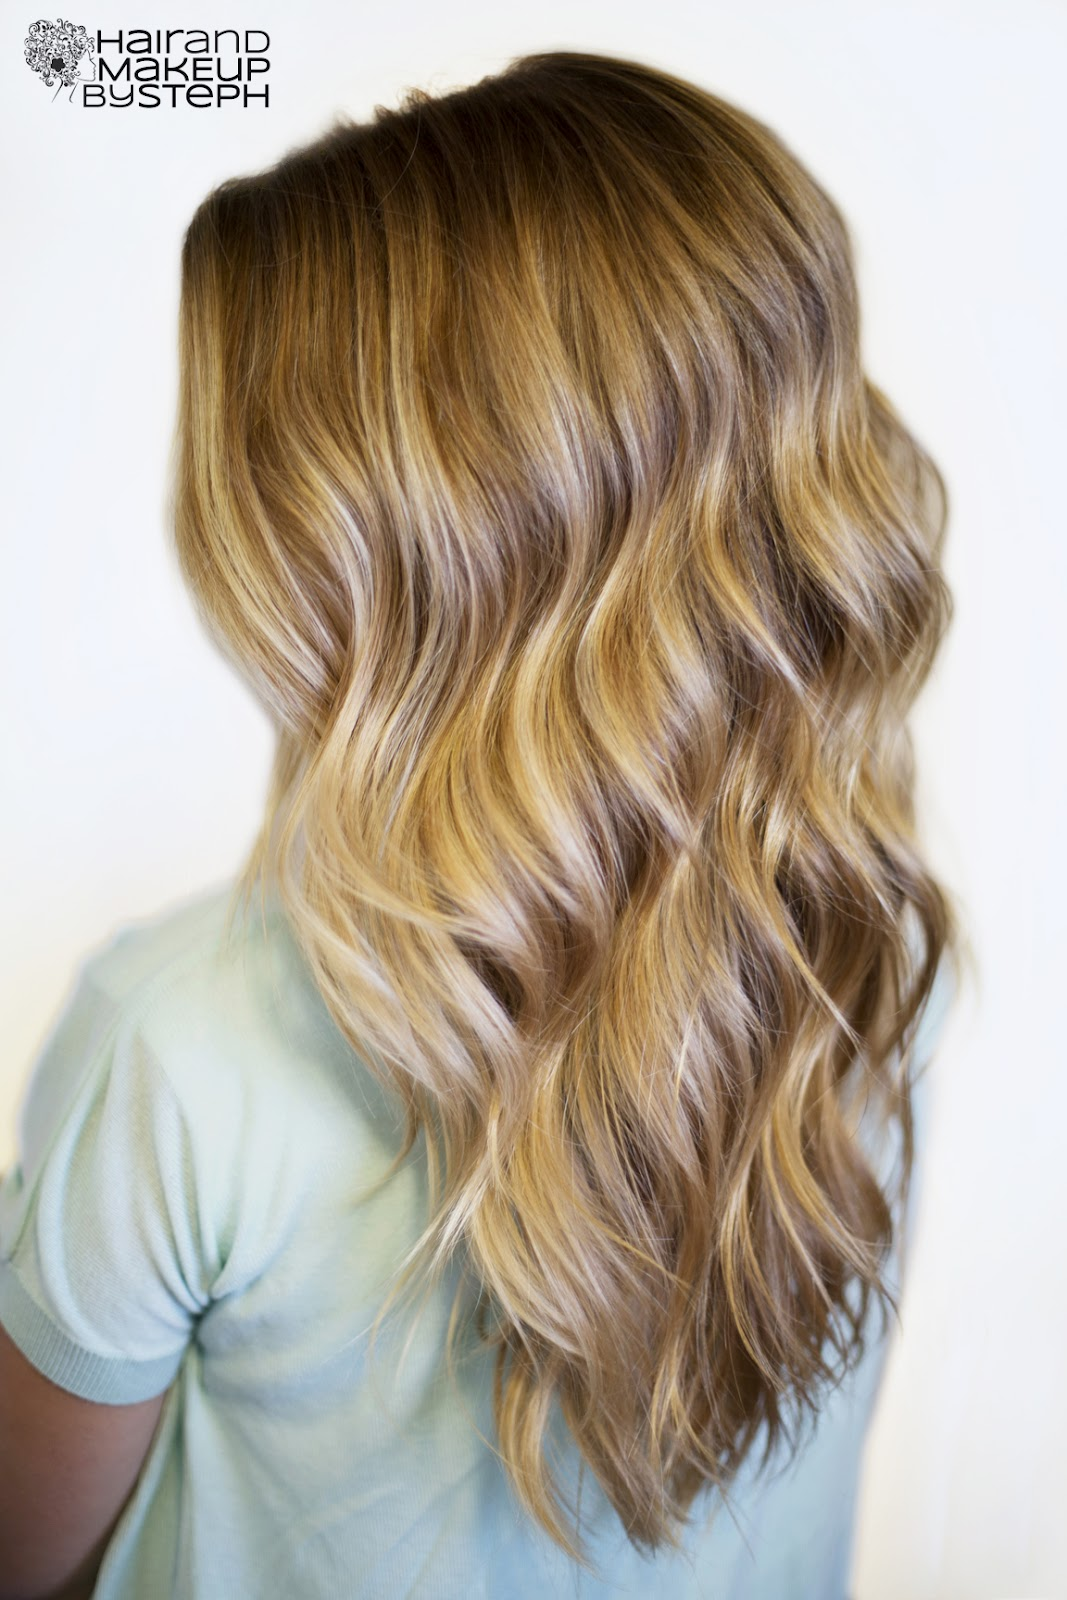 Beach Waves Curls Hairstyle For Women 27